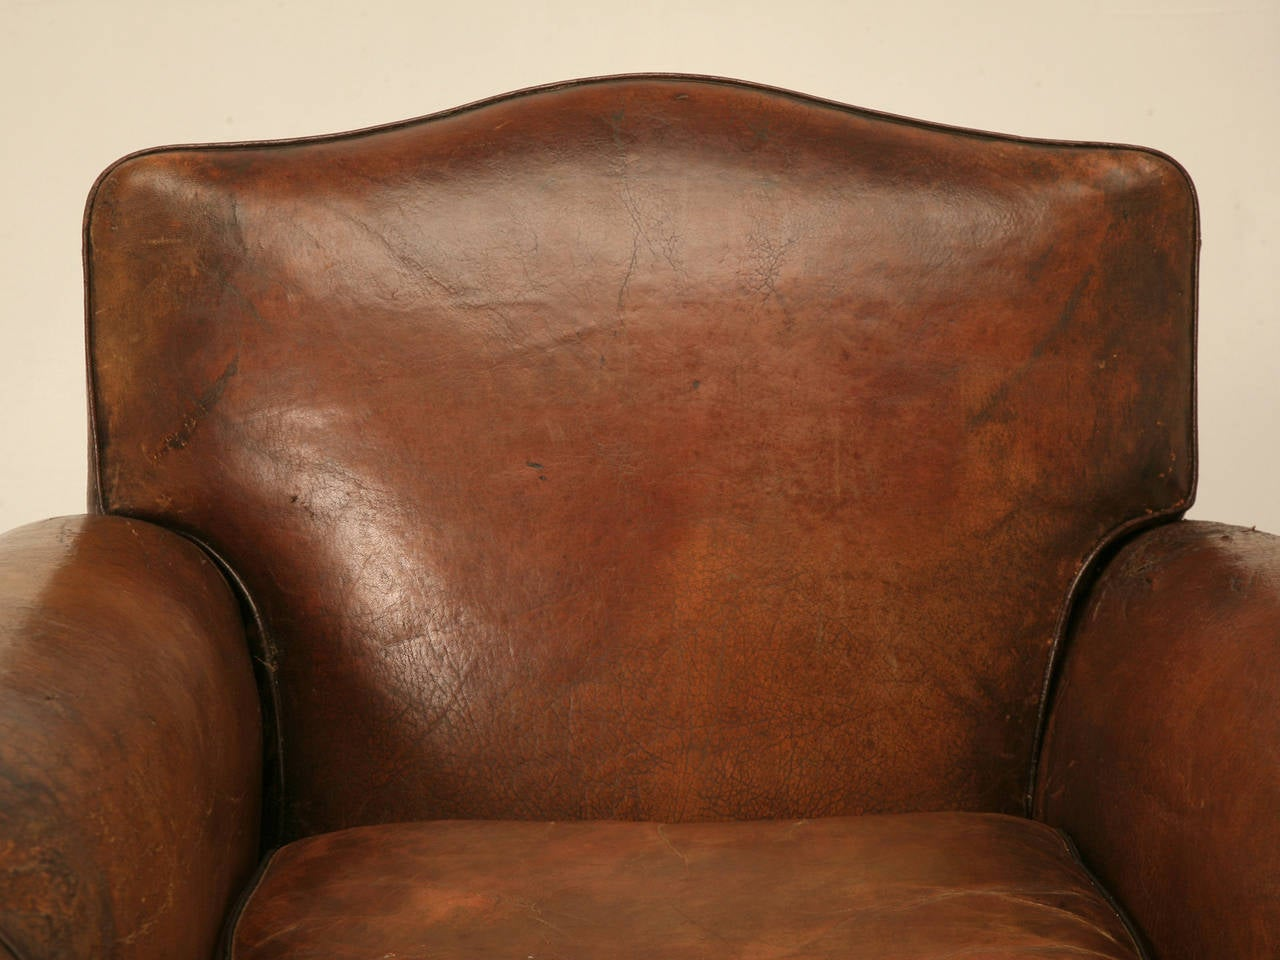 Circa 1930'2 French leather club chair. We rebuilt the chair from the bare frame up while not disturbing the original leather covering. Springs were eight way hand tied, and any padding required was horsehair. This particular model is larger and